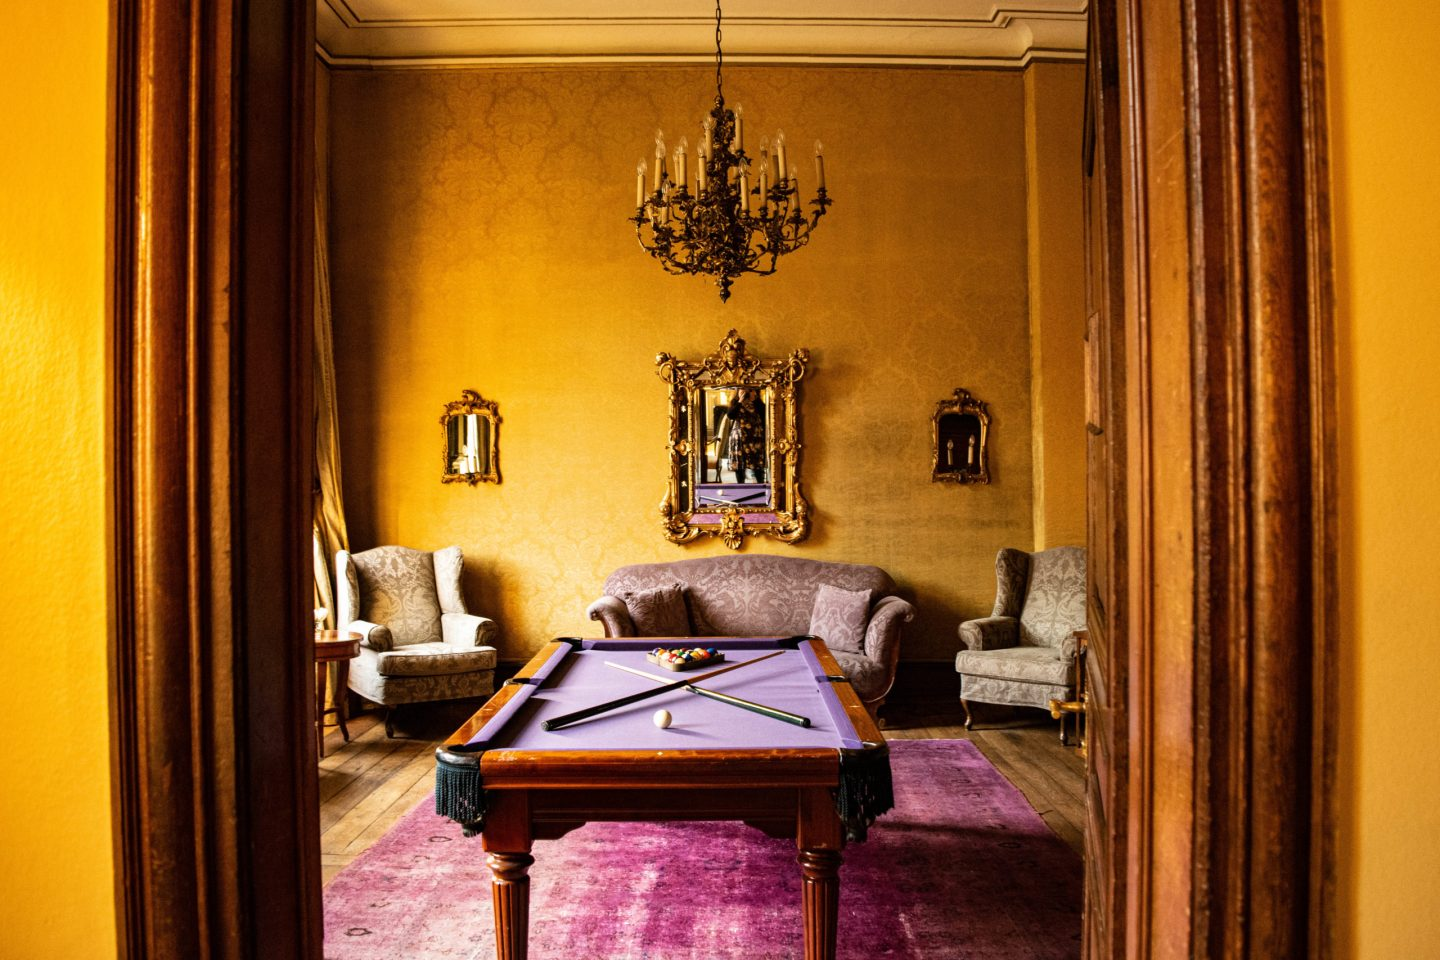 Billiards room at the hotel